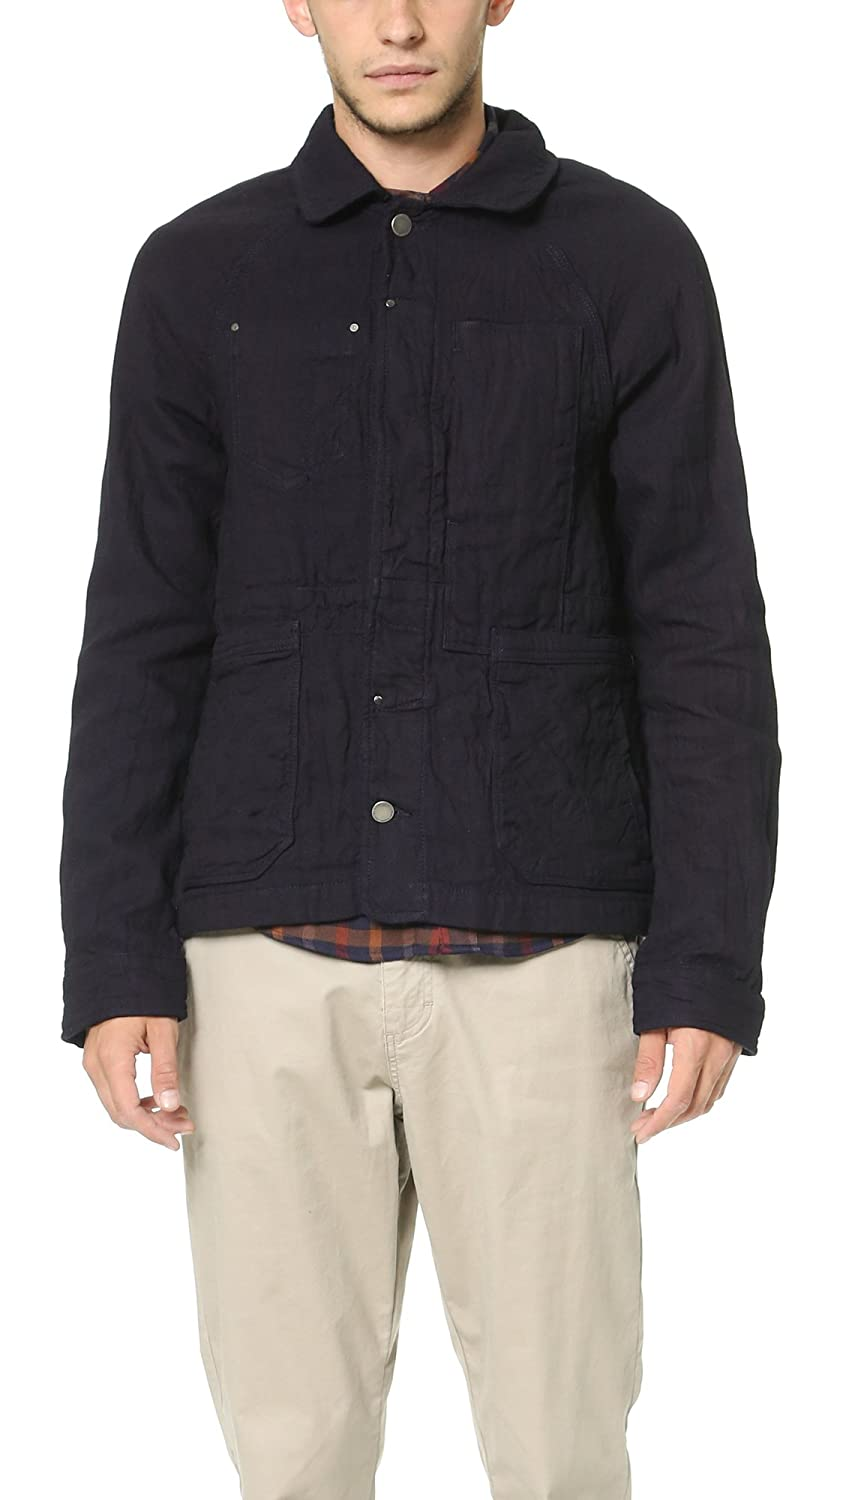 Scotch & Soda Herren Jacke Workwear 15060630302